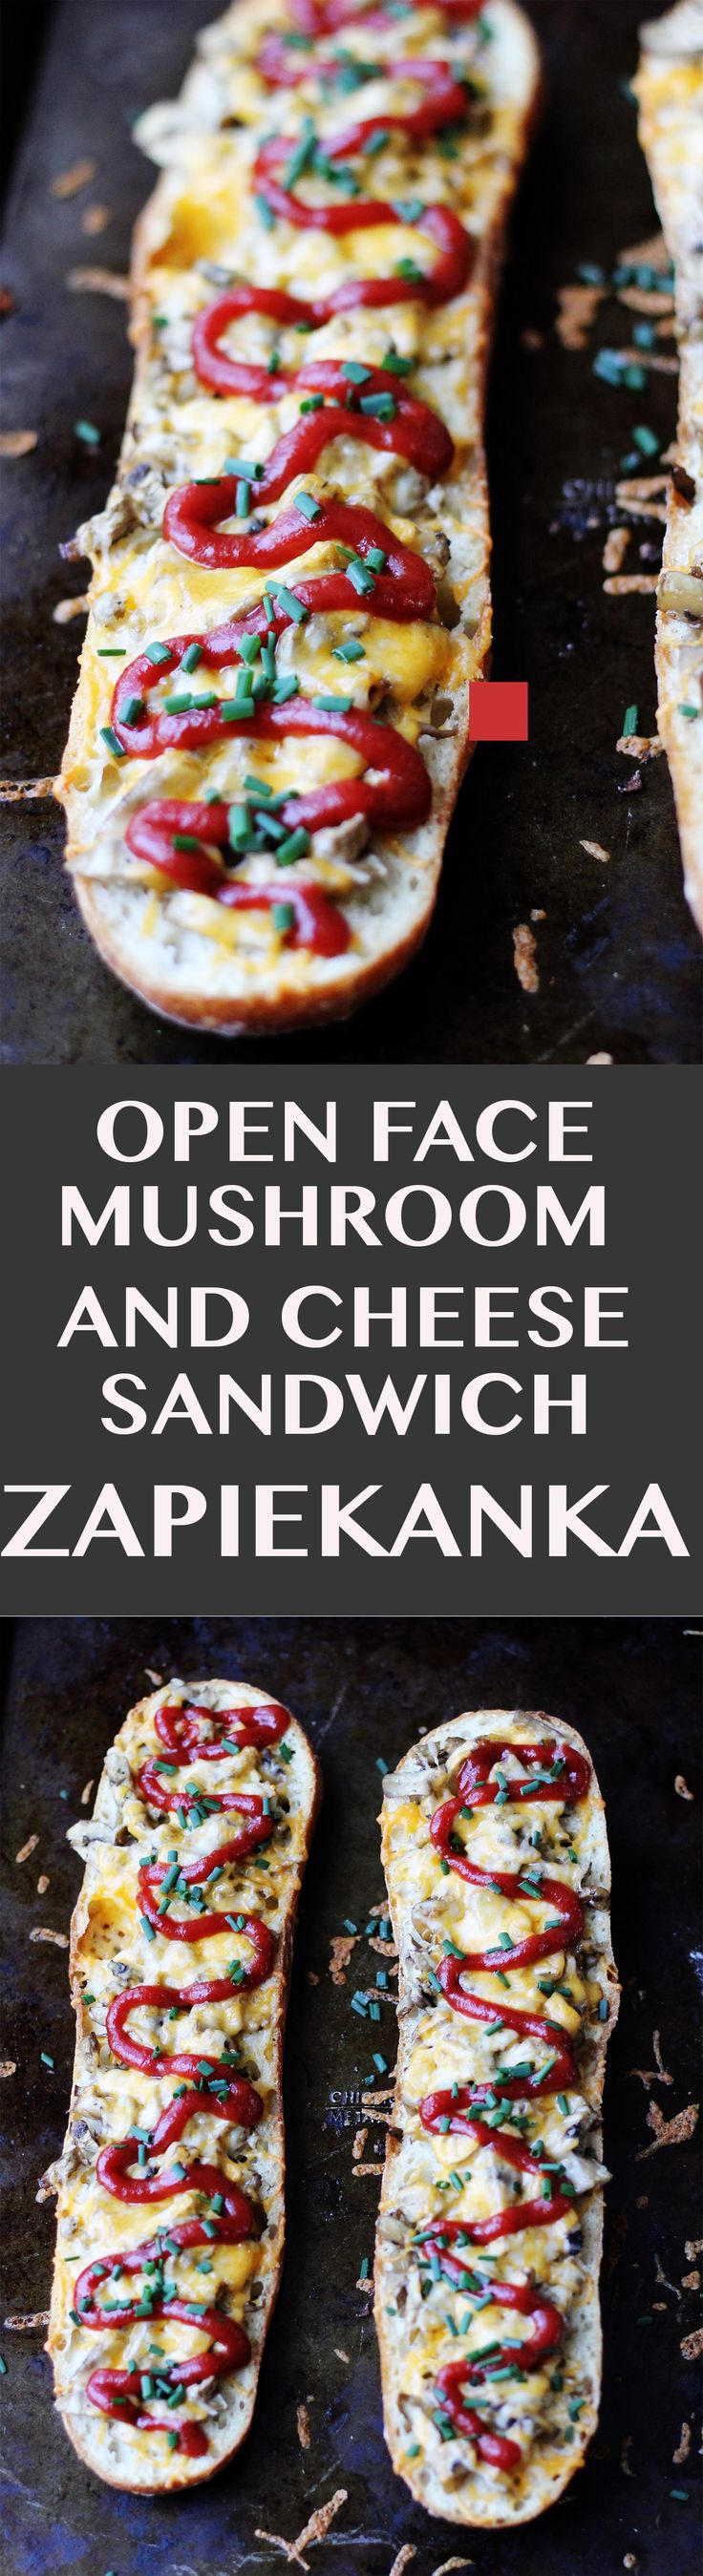 Open Face Mushroom and Cheese Sandwich – famous Polish street food called Zapiekanka or Zapiekanki in plural. You can find them on every corner in Poland.